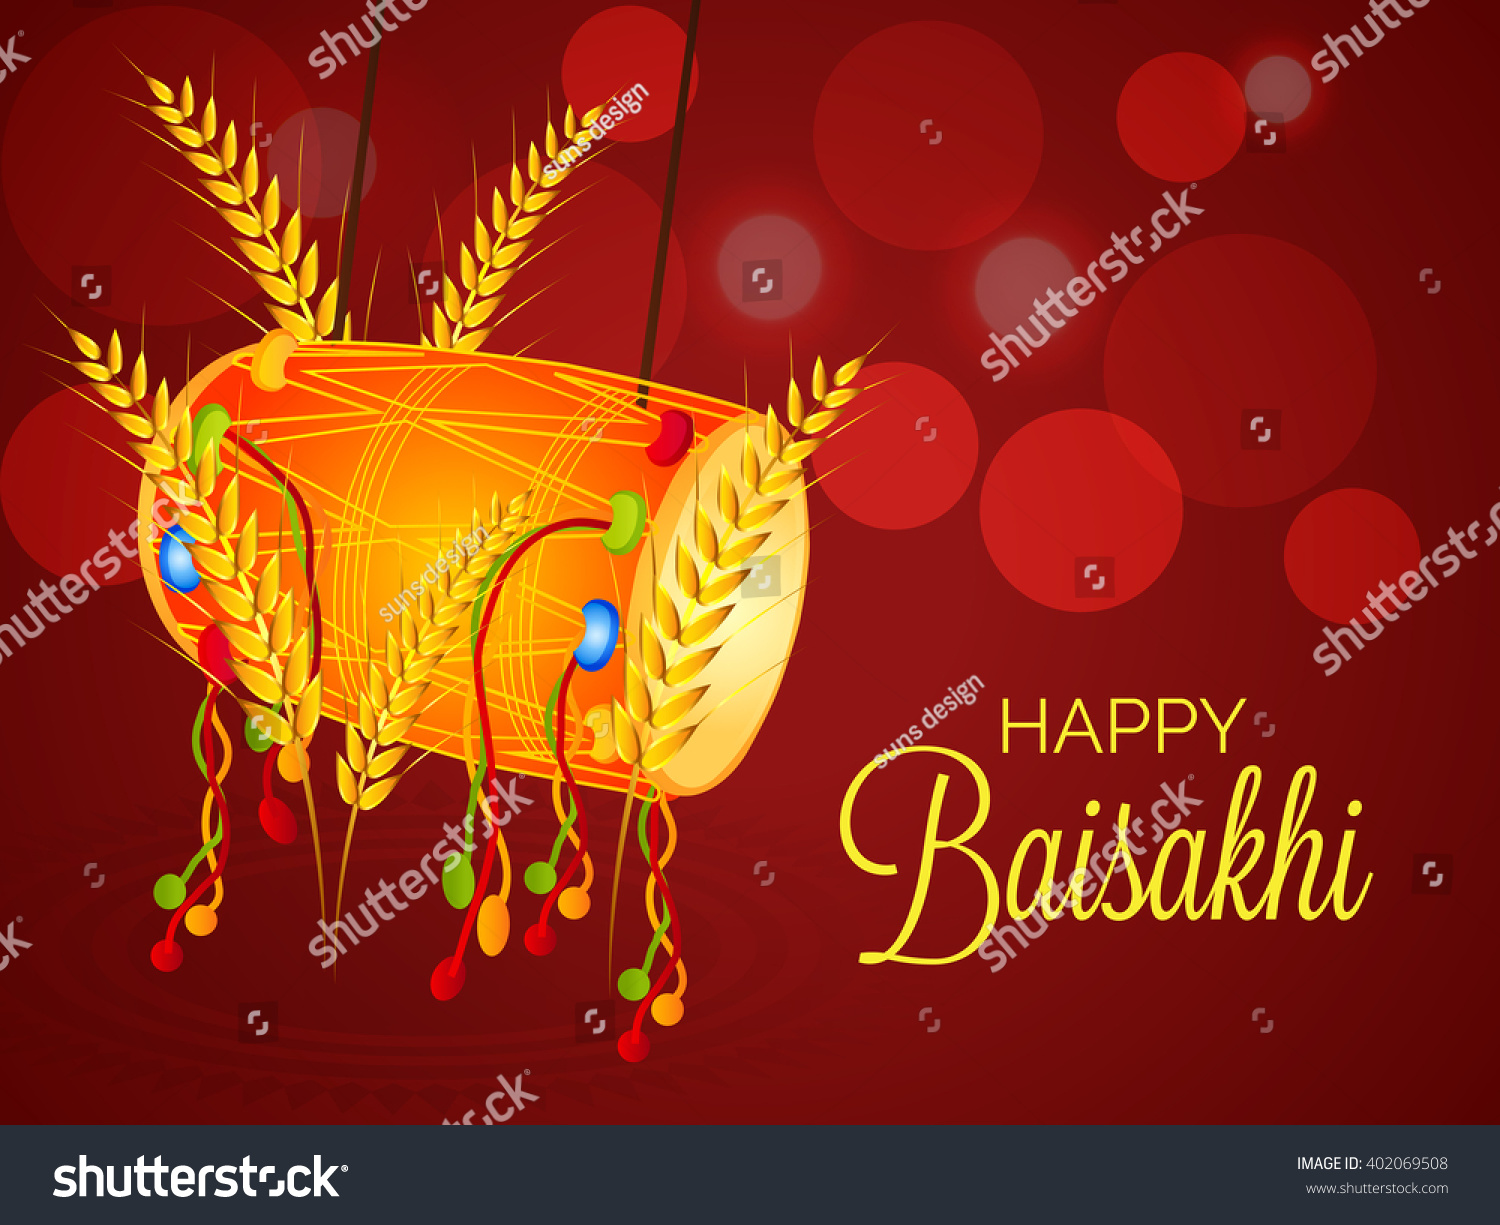 vector illustration of a background for punjab new year baisakhi mubarak happy baisakhi festival